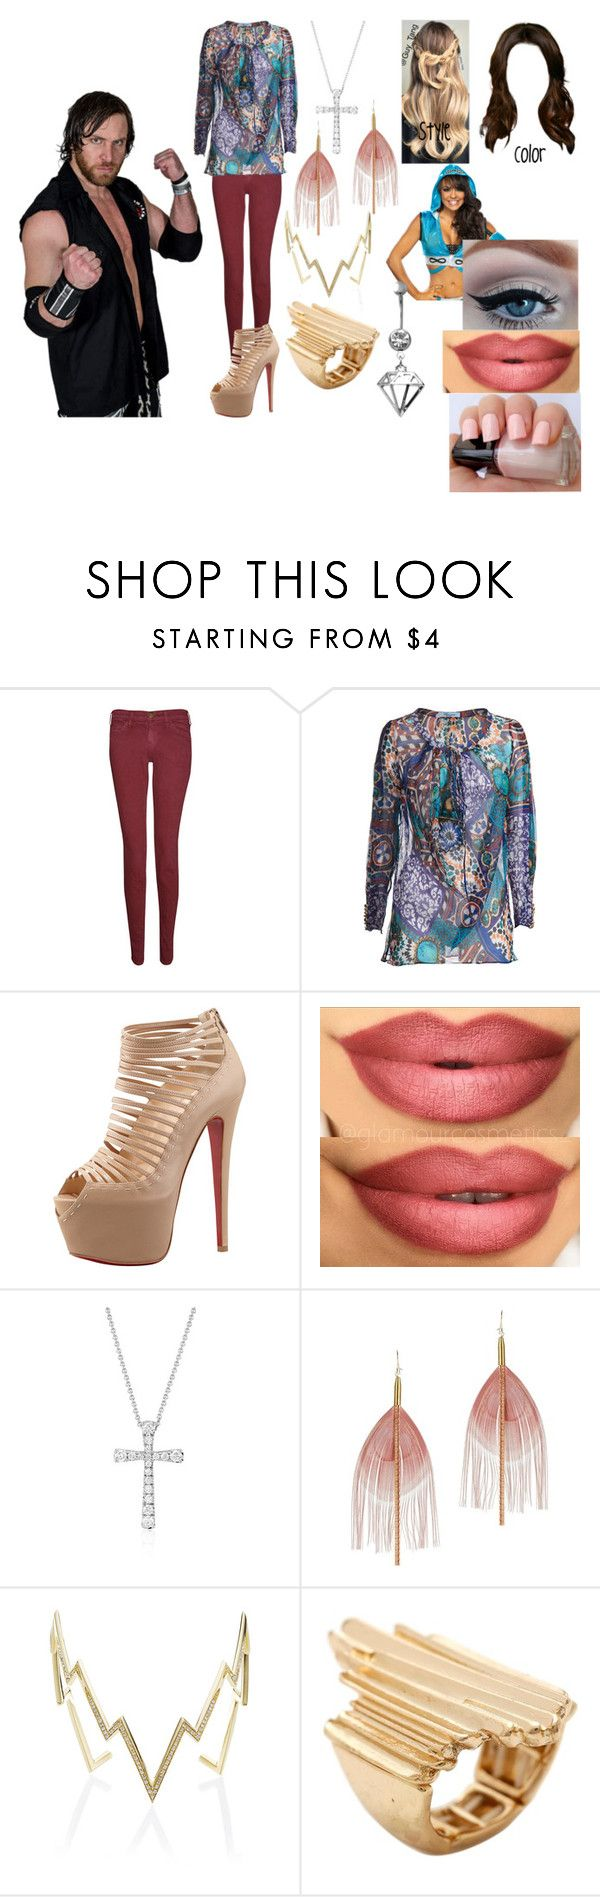 """""""The Viper Sister (Chris Sabin Love Story)"""" by anaeve ❤ liked on Polyvore featuring Current/Elliott, Blumarine, Christian Louboutin, Blue Nile, Serefina and Venyx"""